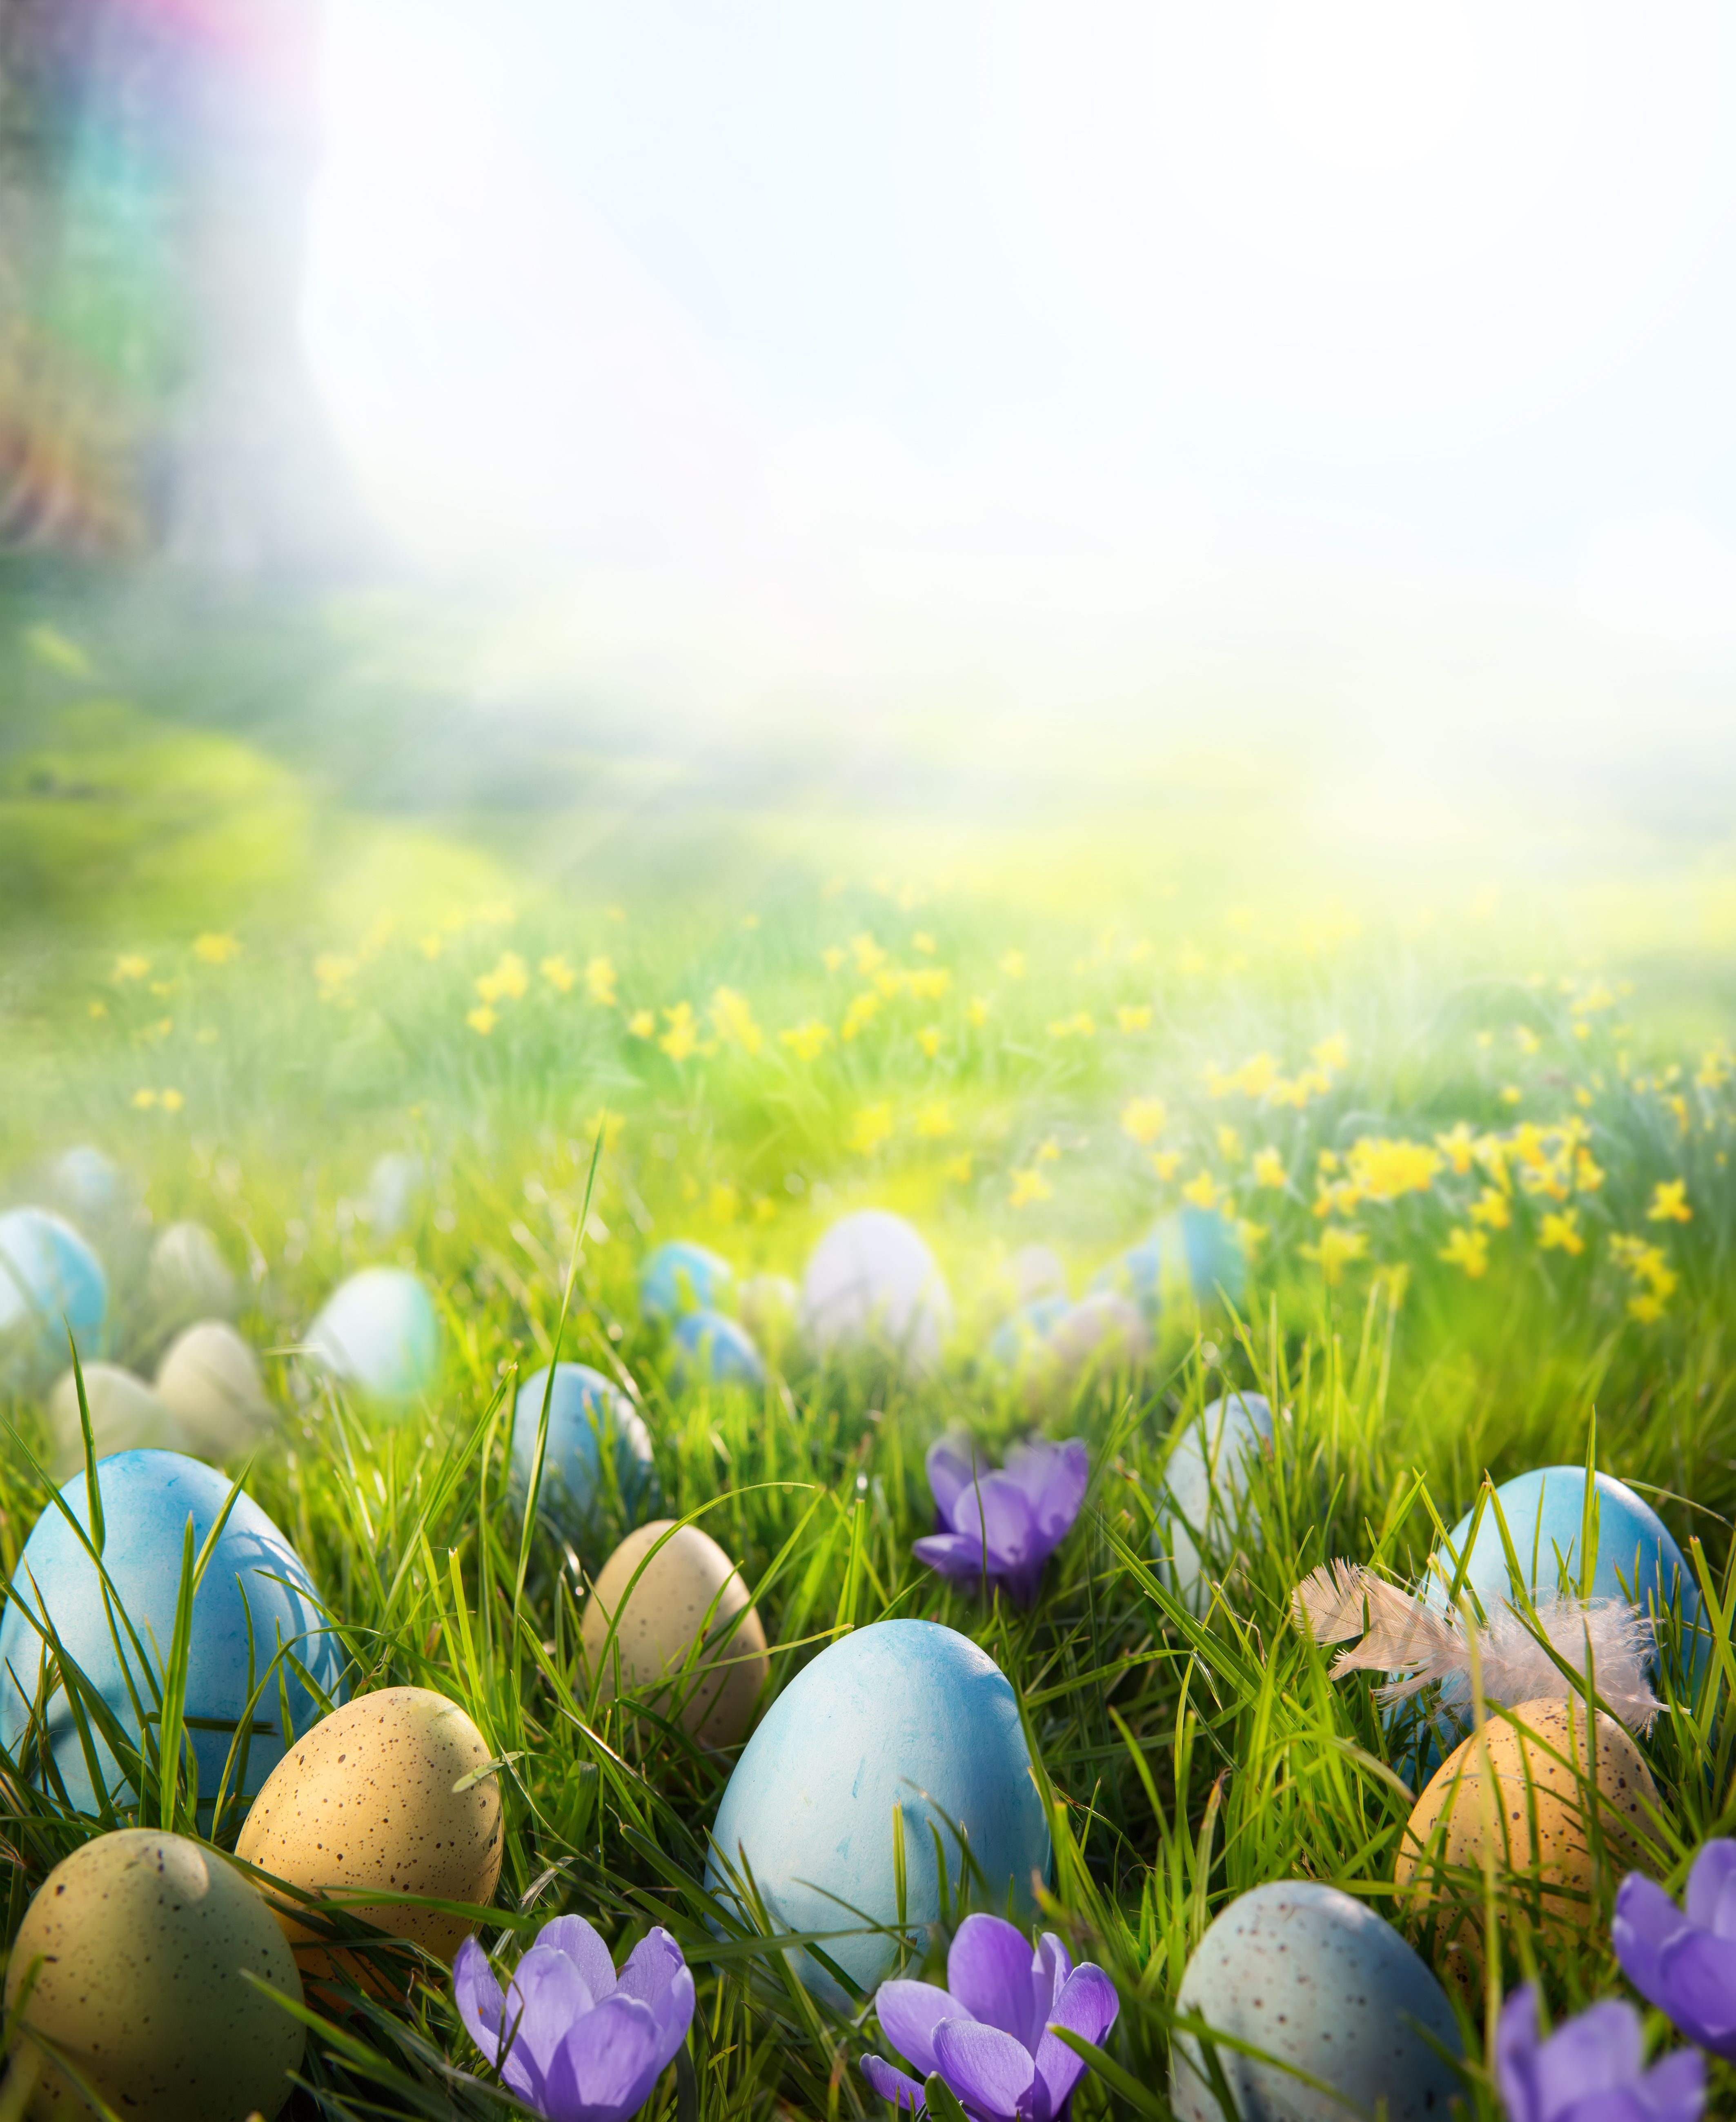 Printed Colorful Easter Eggs On The Grass In The Sunshine Backdrop For Photography Easter Backgrounds Easter Colors Coloring Easter Eggs